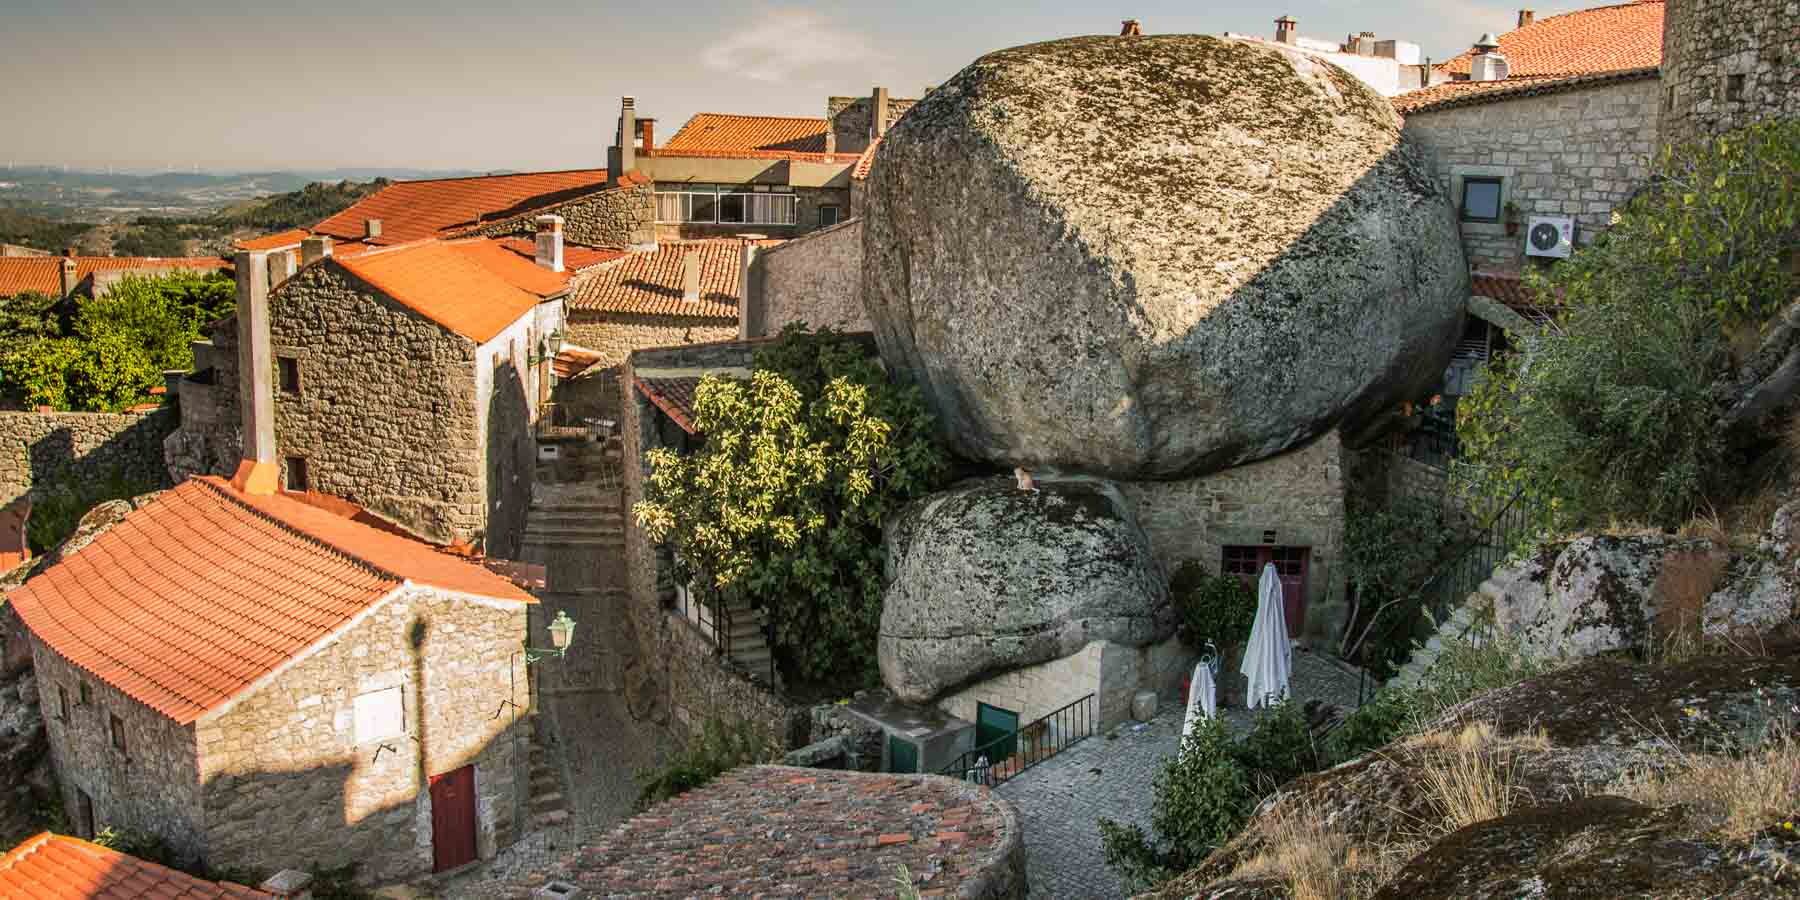 The town of Monsanto with huge boulders.